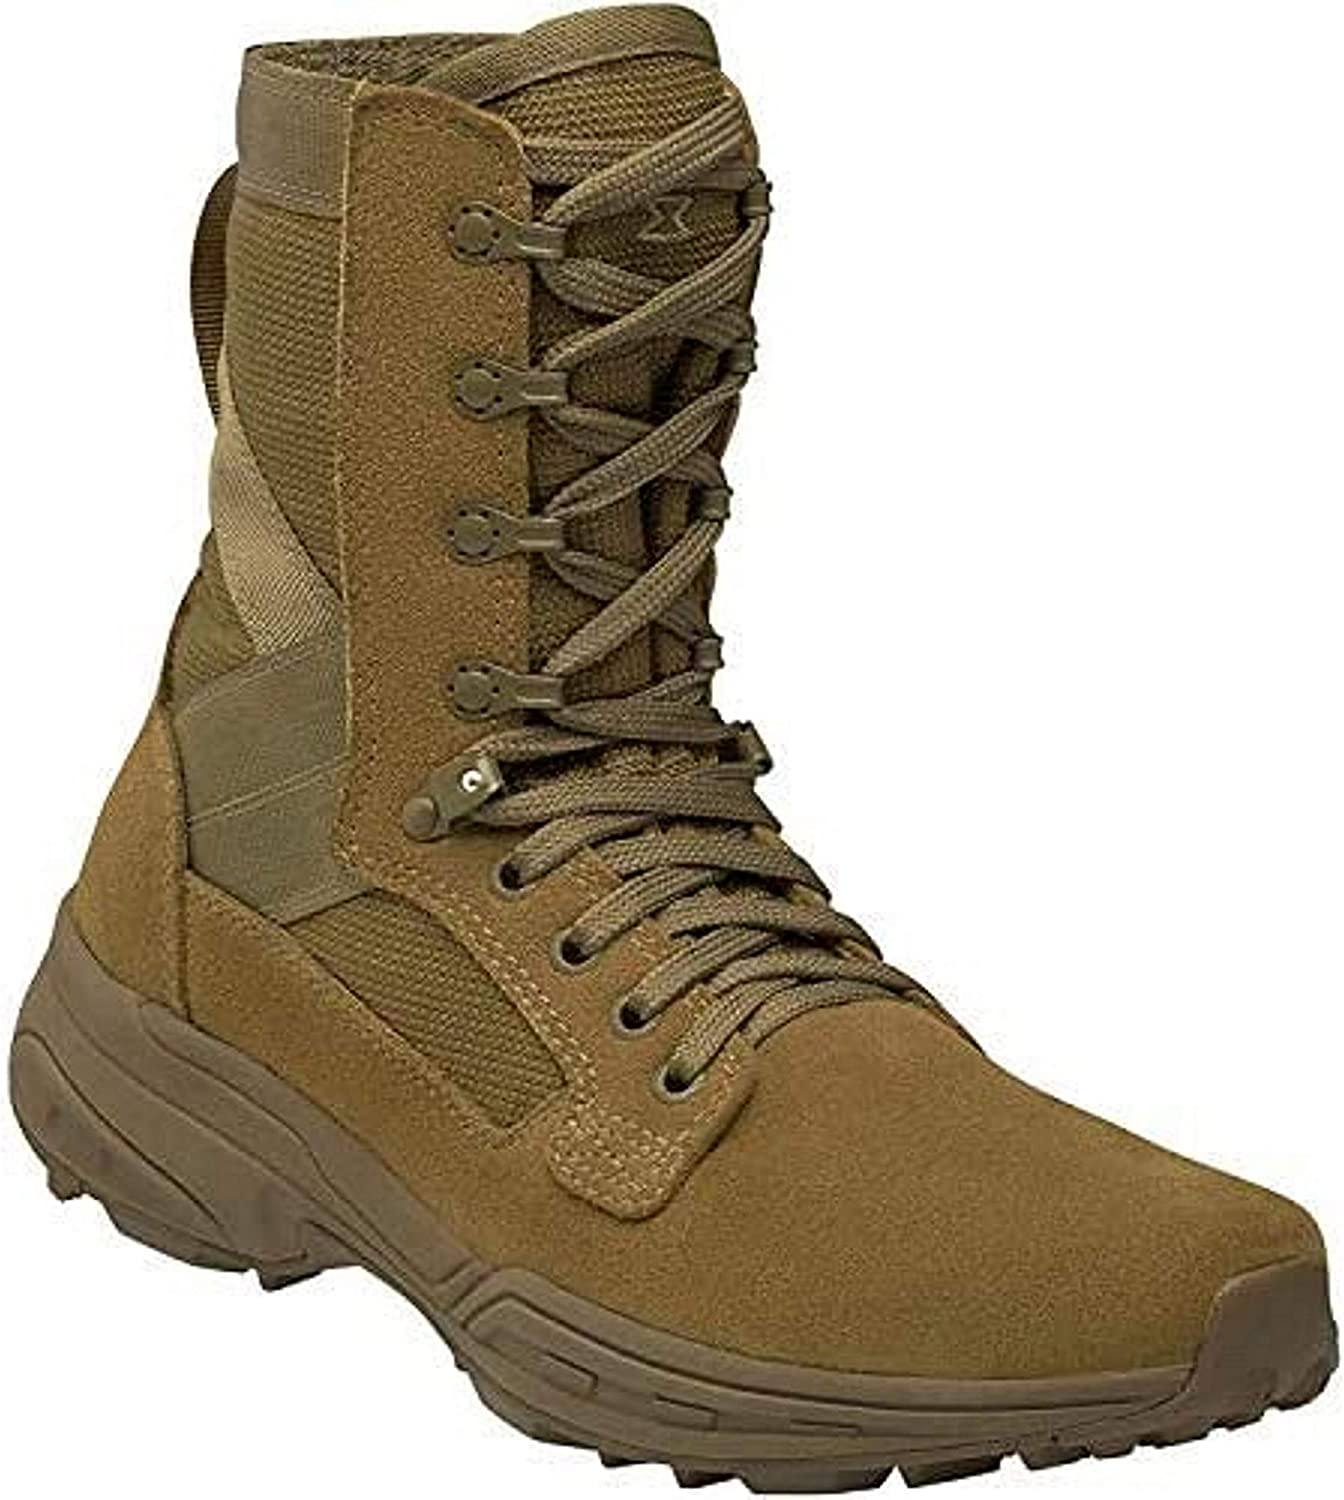 GMONT T 8 NFS 670 Regular, Color: Coyote, Size: 10 (481996/205-10)